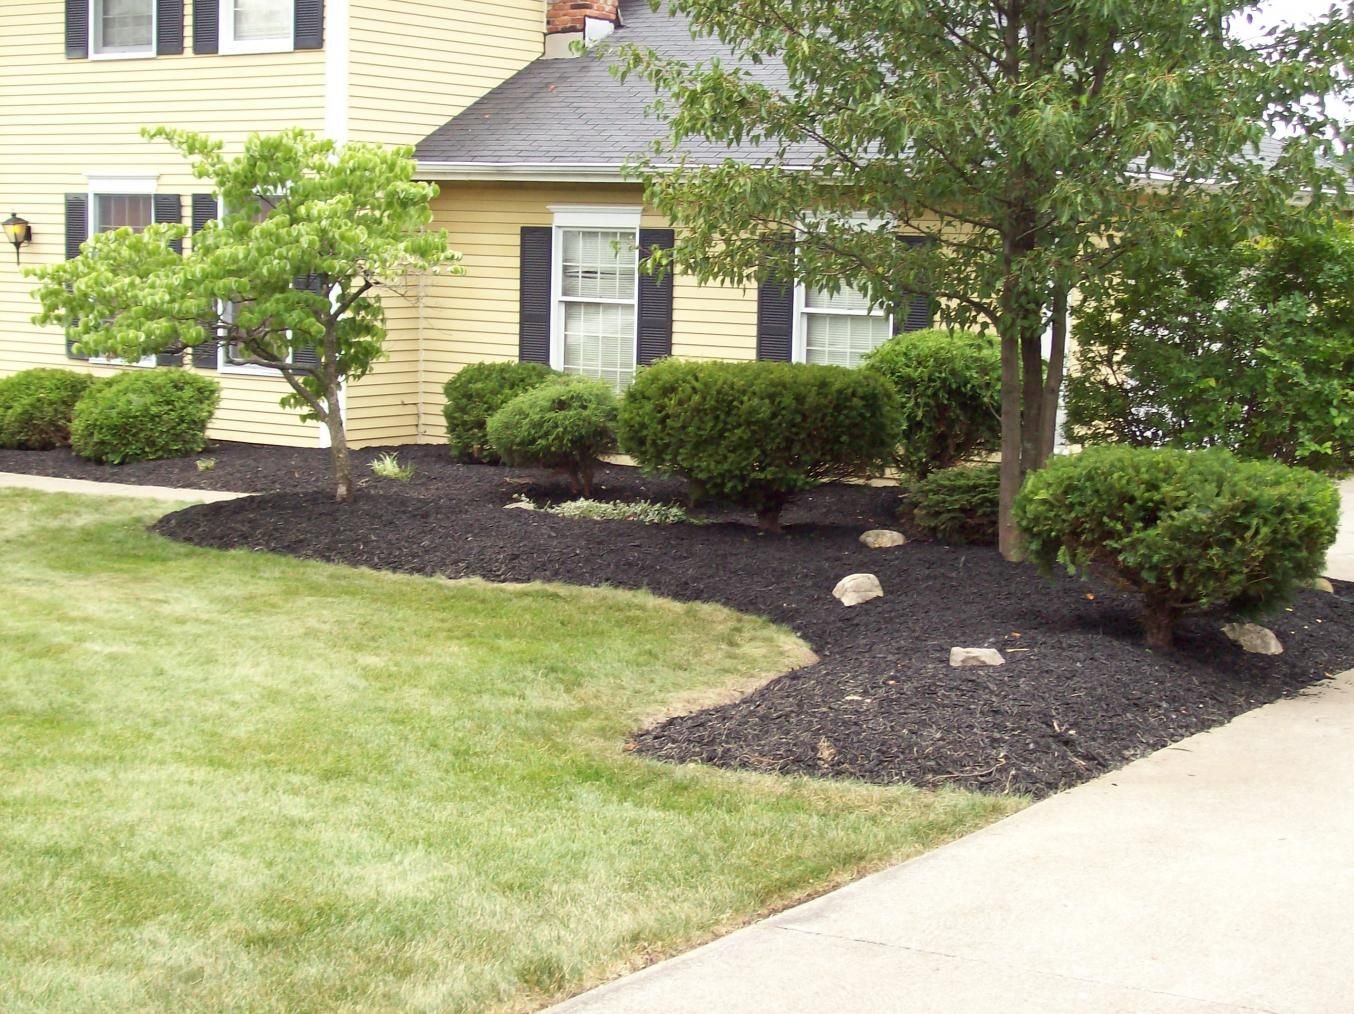 front yard landscape mulch bid example pictures of landscape design landscaping pictures landscaping